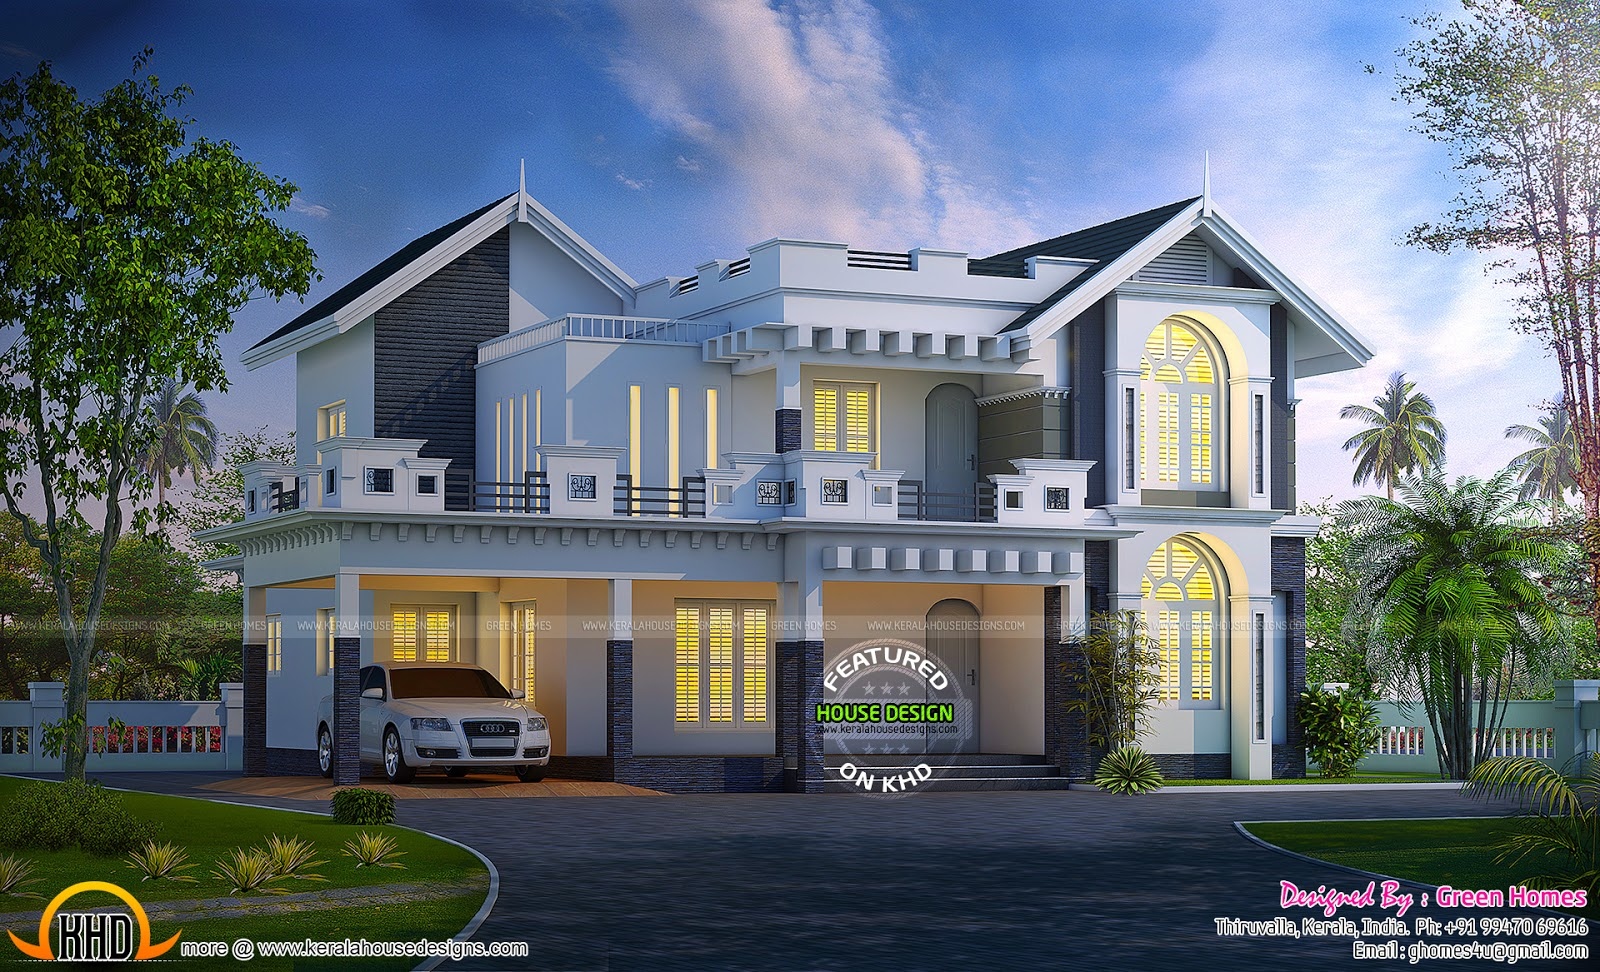 New kerala house plans for june 2015 keralahousedesigns for New home designs 2015